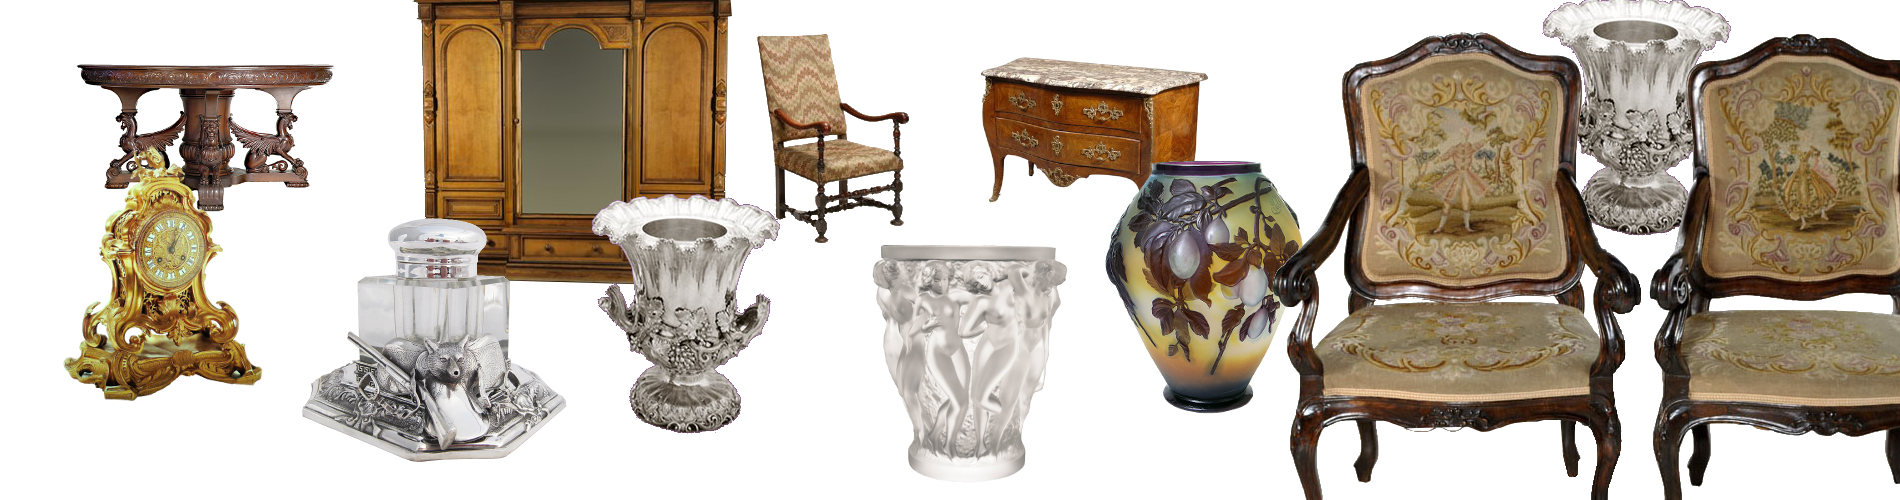 achat comptant objets anciens livre meuble linge jouet tableau pascal le th on. Black Bedroom Furniture Sets. Home Design Ideas